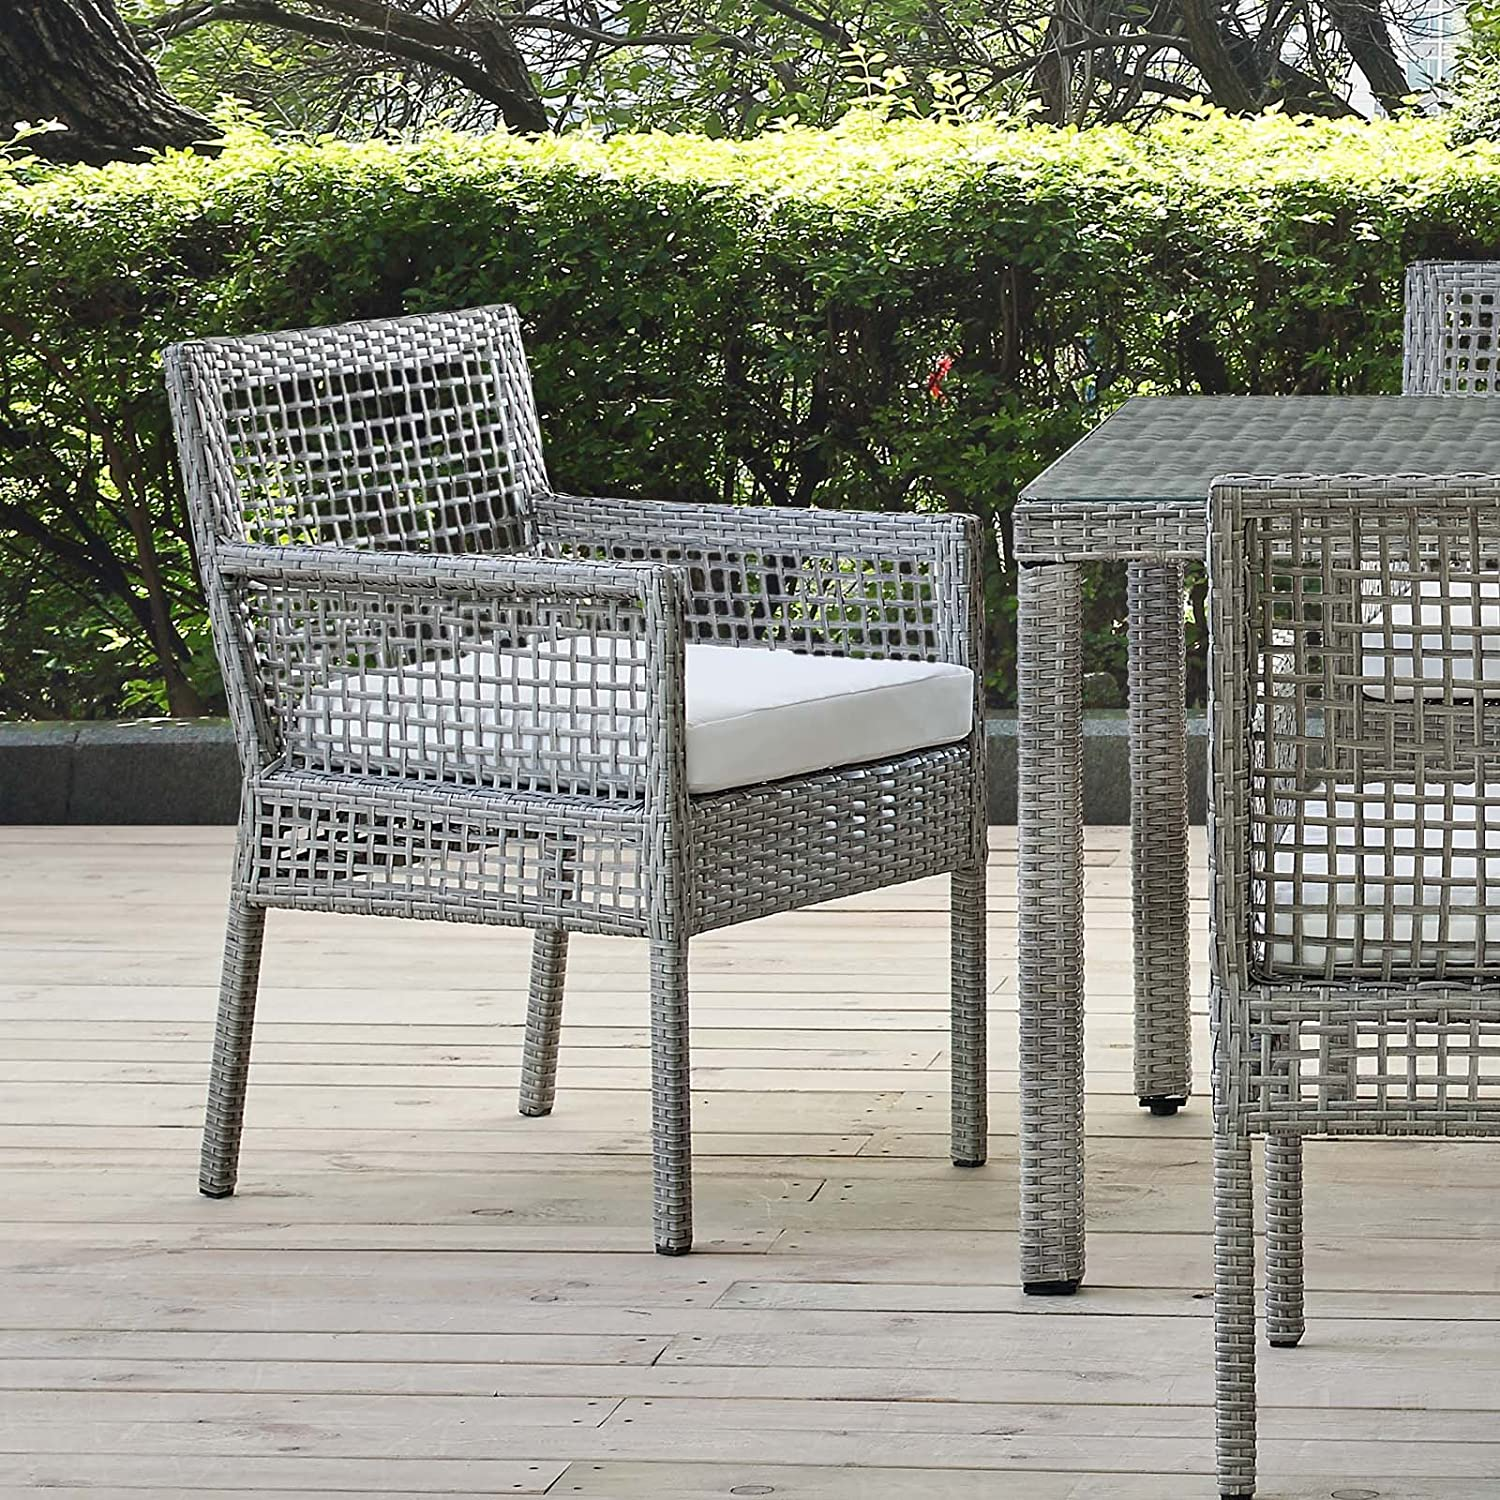 Modway EEI-2920-GRY-WHI Outdoor Patio Wicker Rattan Dining Armchair, Gray White